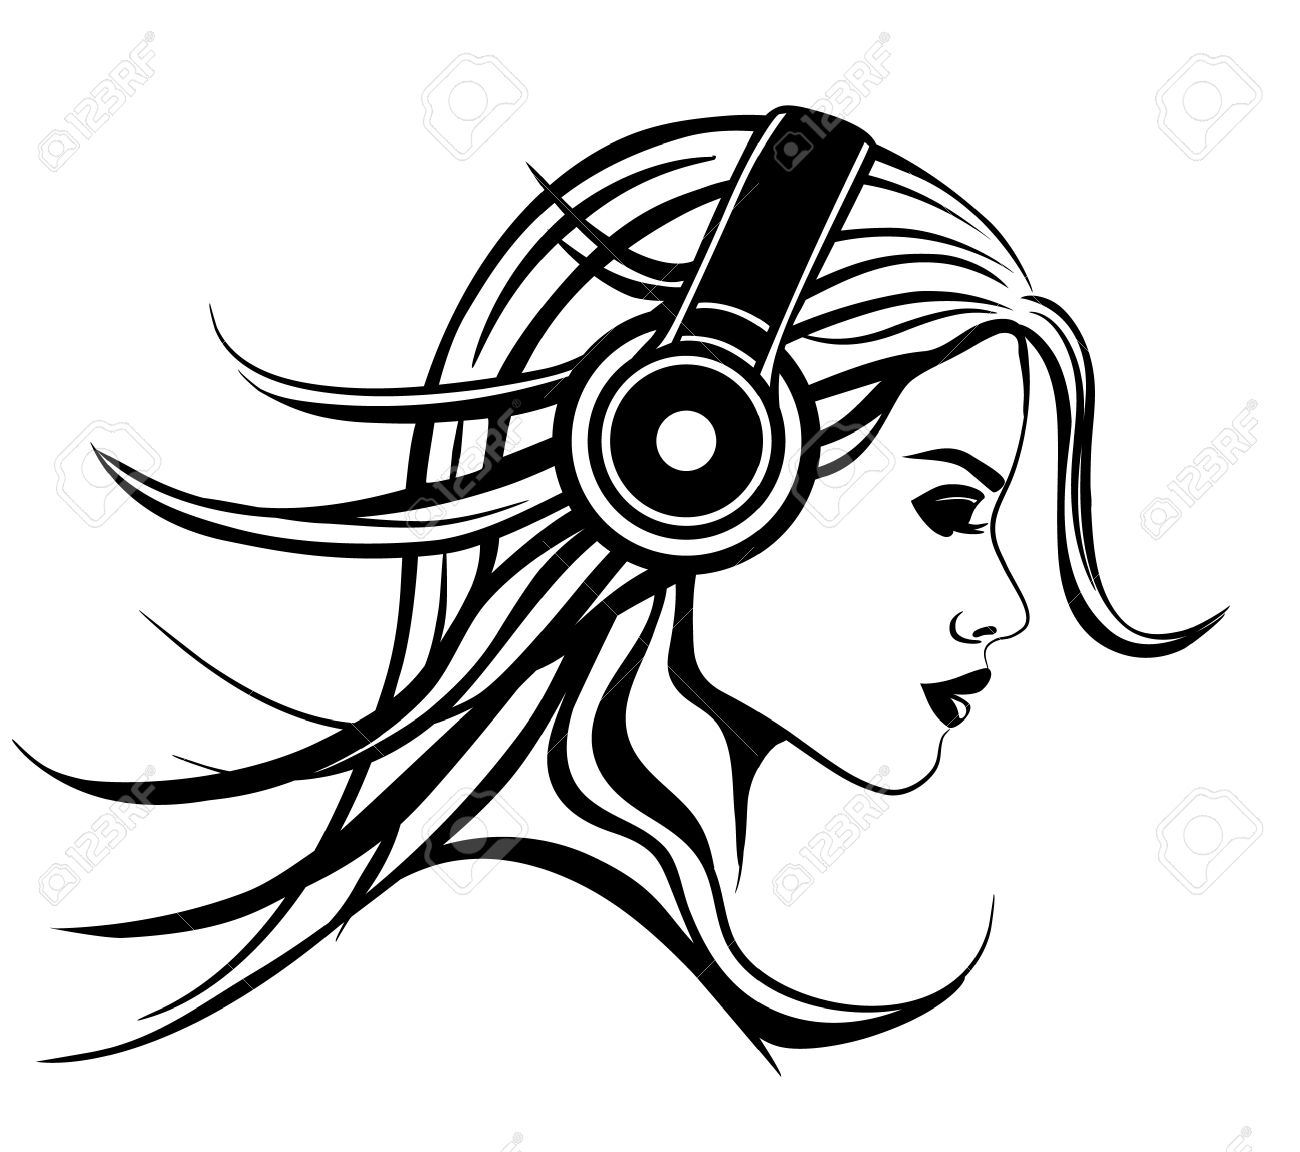 1300x1152 Girl With Headphones Vector Illustration Royalty Free Cliparts